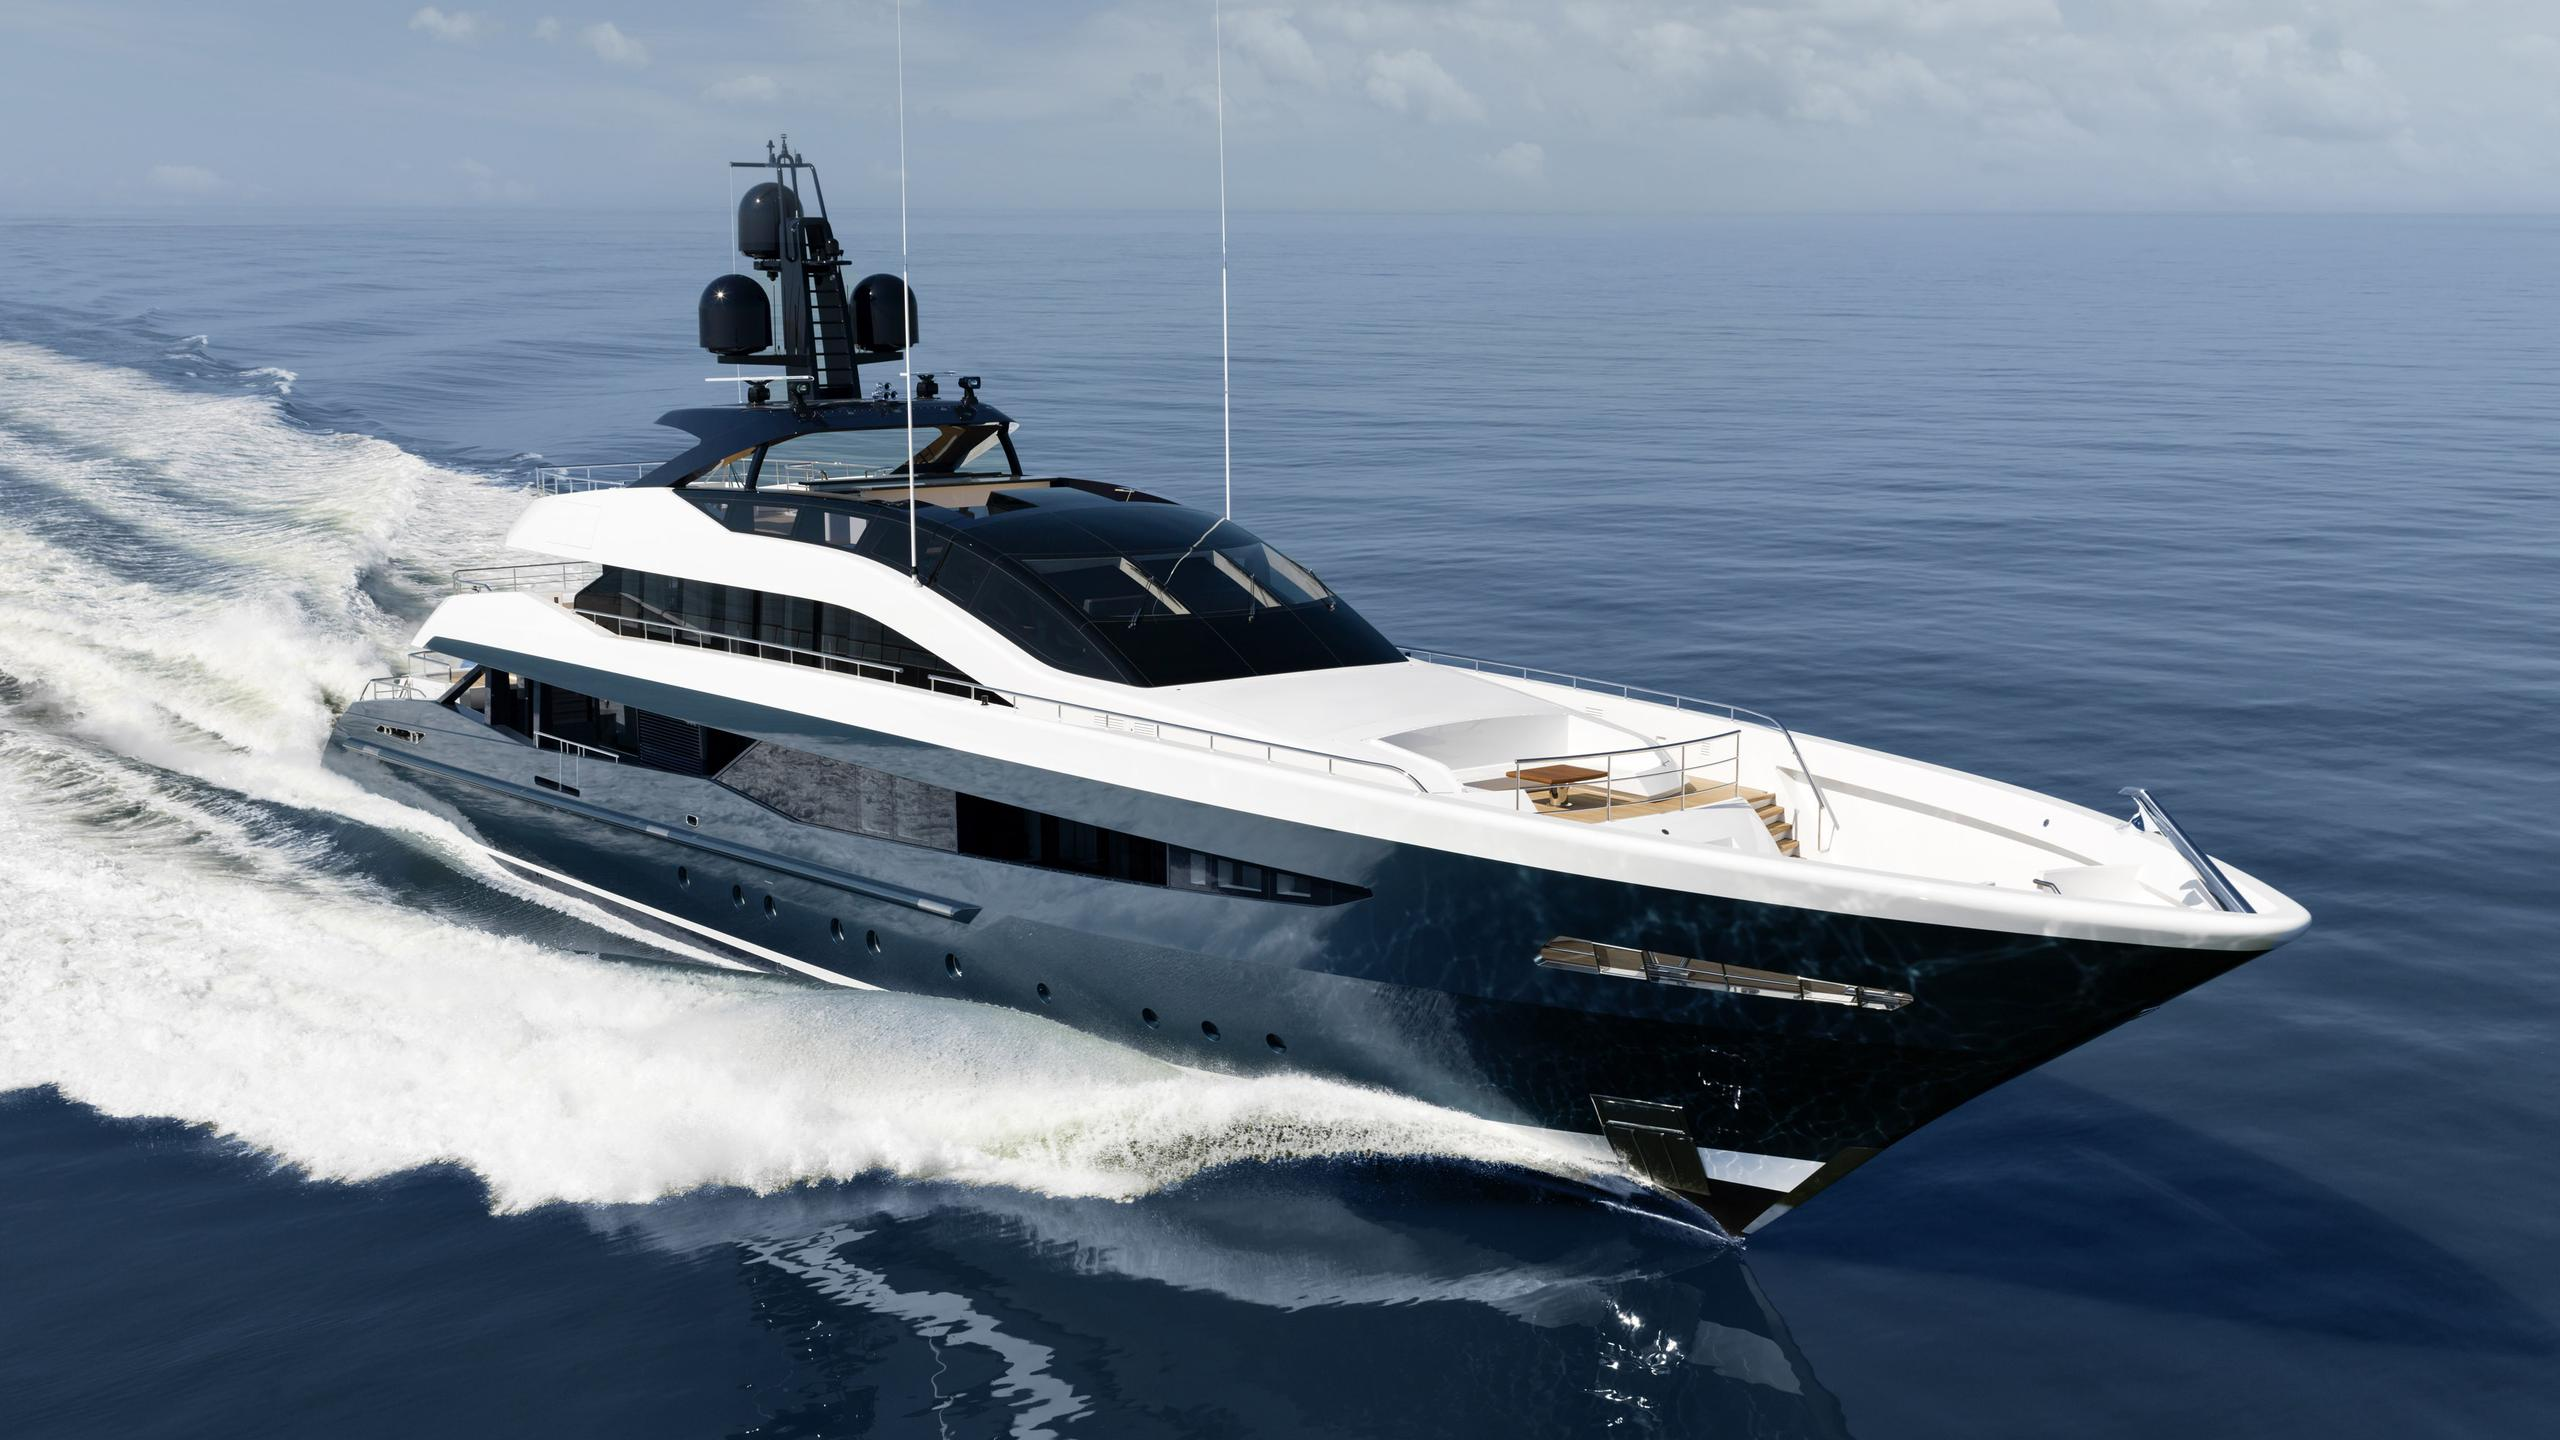 irisha 18151 motoryacht heesen yachts 2018 51m sea trials half profile